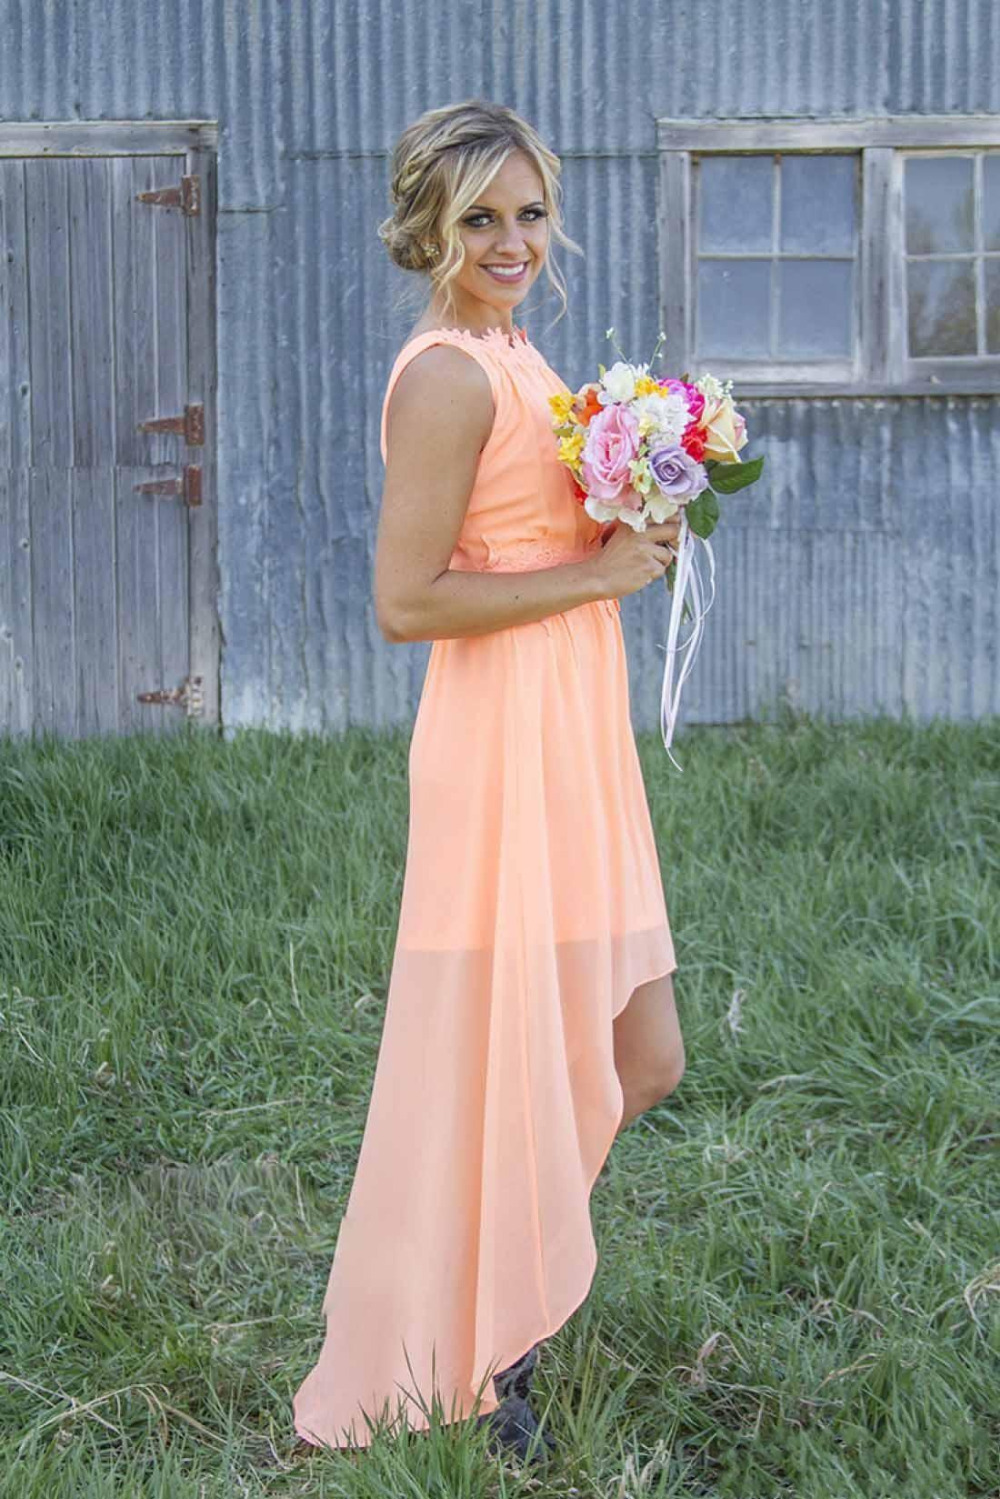 2016 mint orange country bridesmaid dresses under 100 knee length 2016 mint orange country bridesmaid dresses under 100 knee length hi lo chiffon dresses beach short party dresses 2015f231 in bridesmaid dresses from ombrellifo Image collections